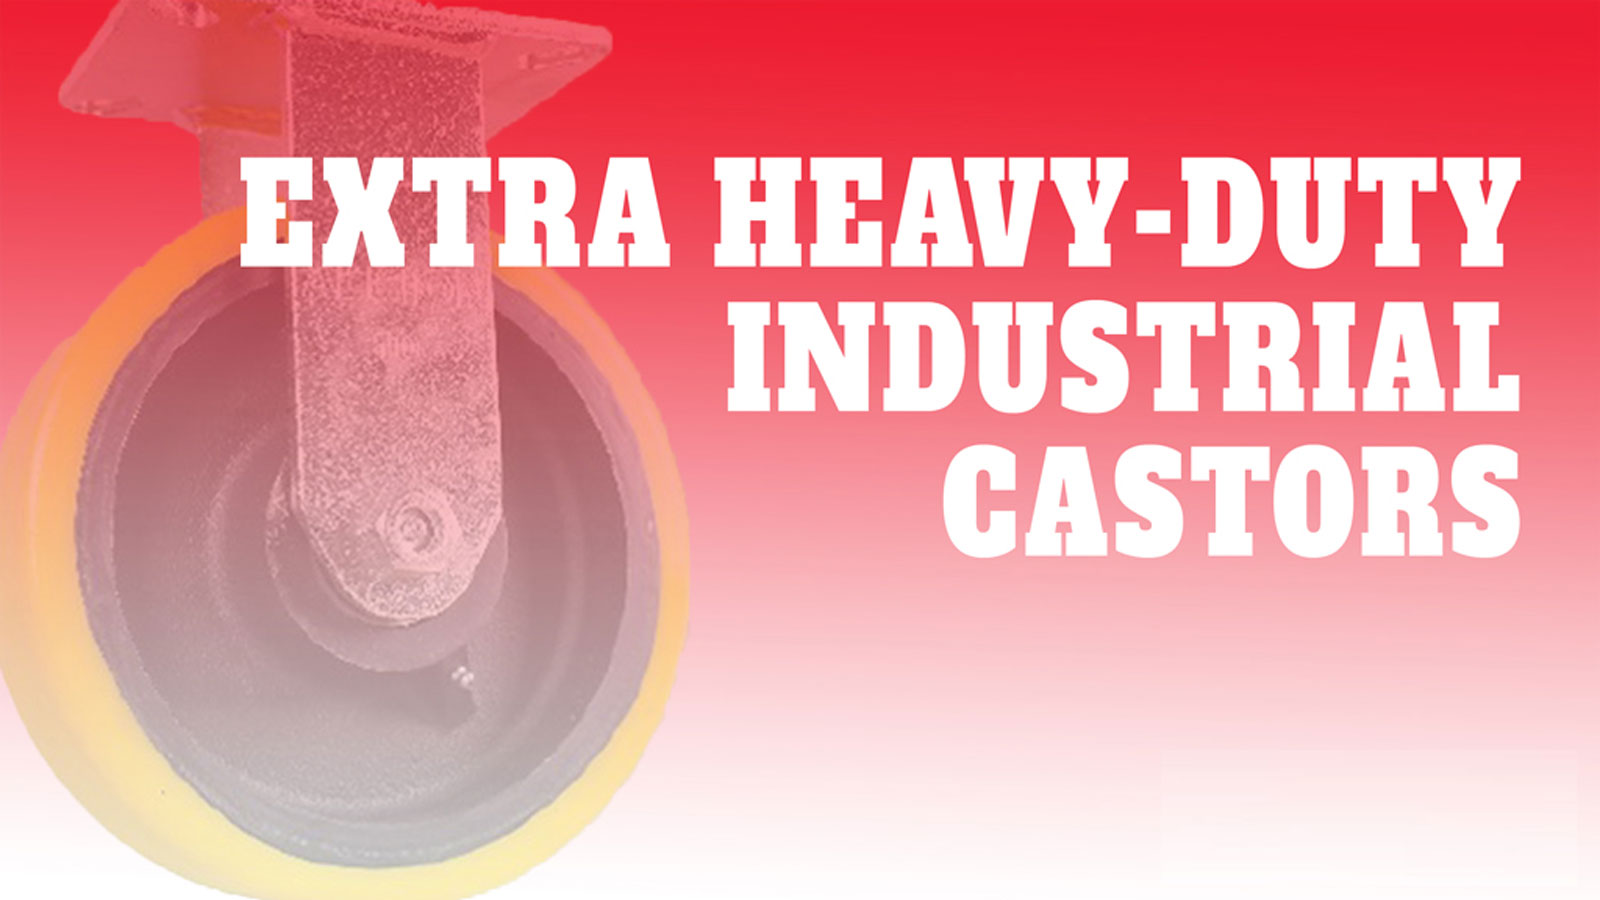 Castor-Extra-Heavy-Duty-Industrial